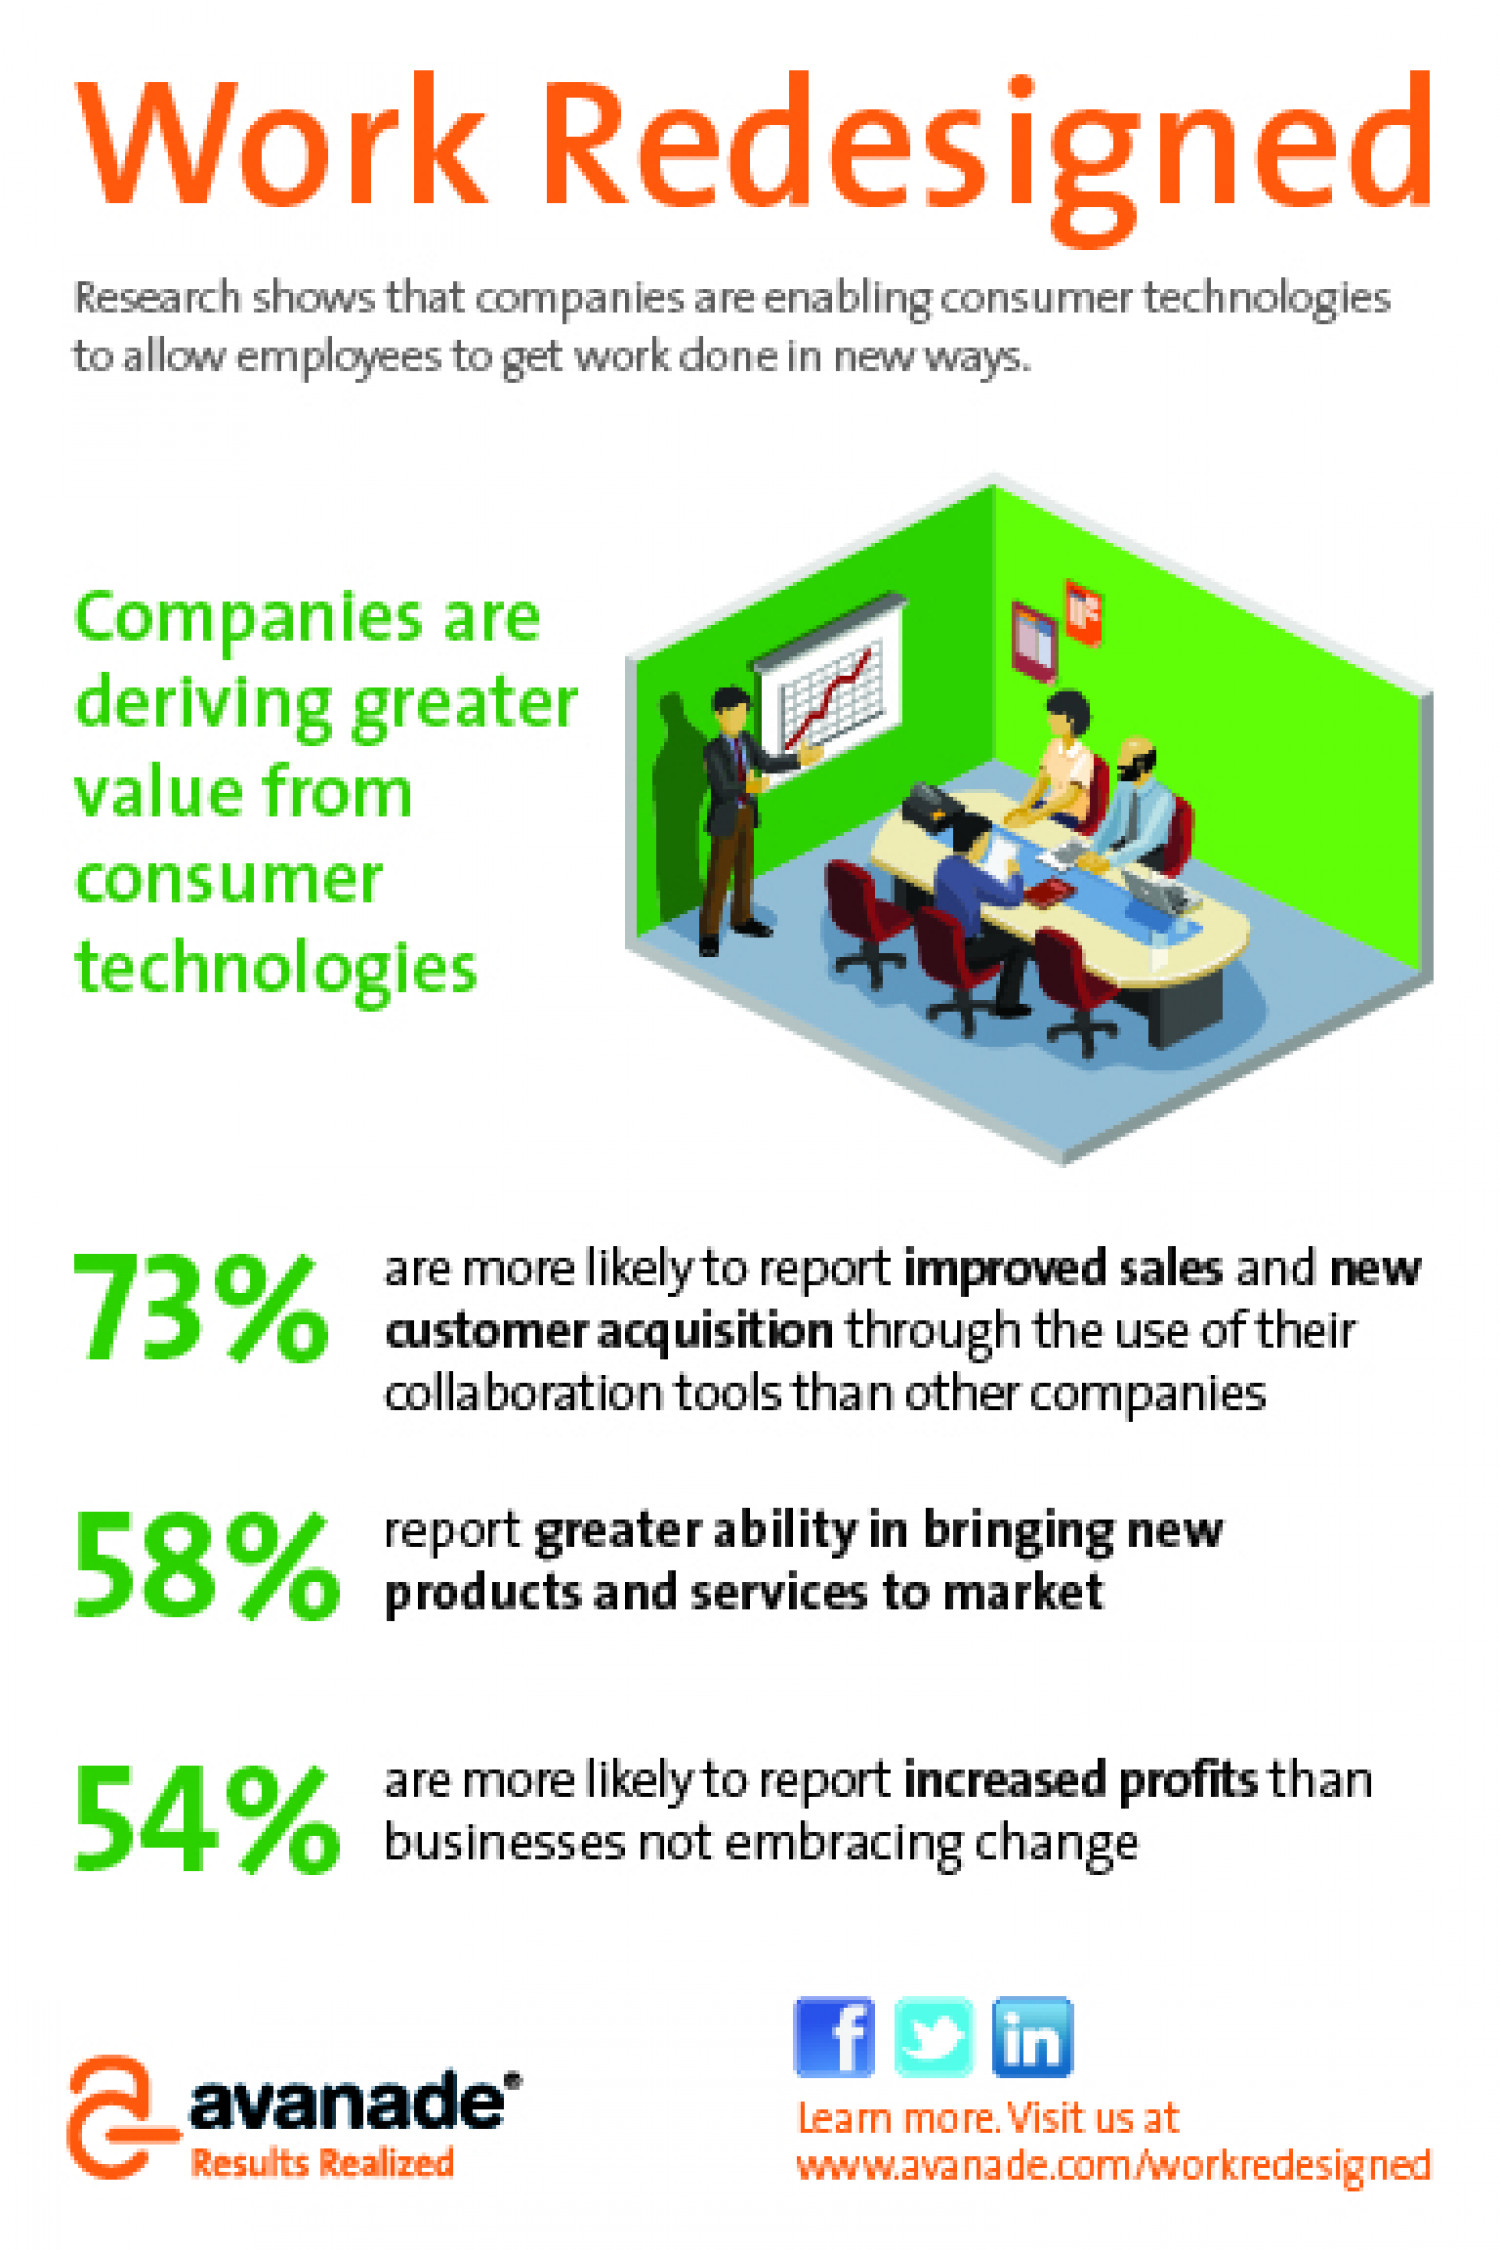 Companies are Deriving Greater Value from Consumer Technologies Infographic